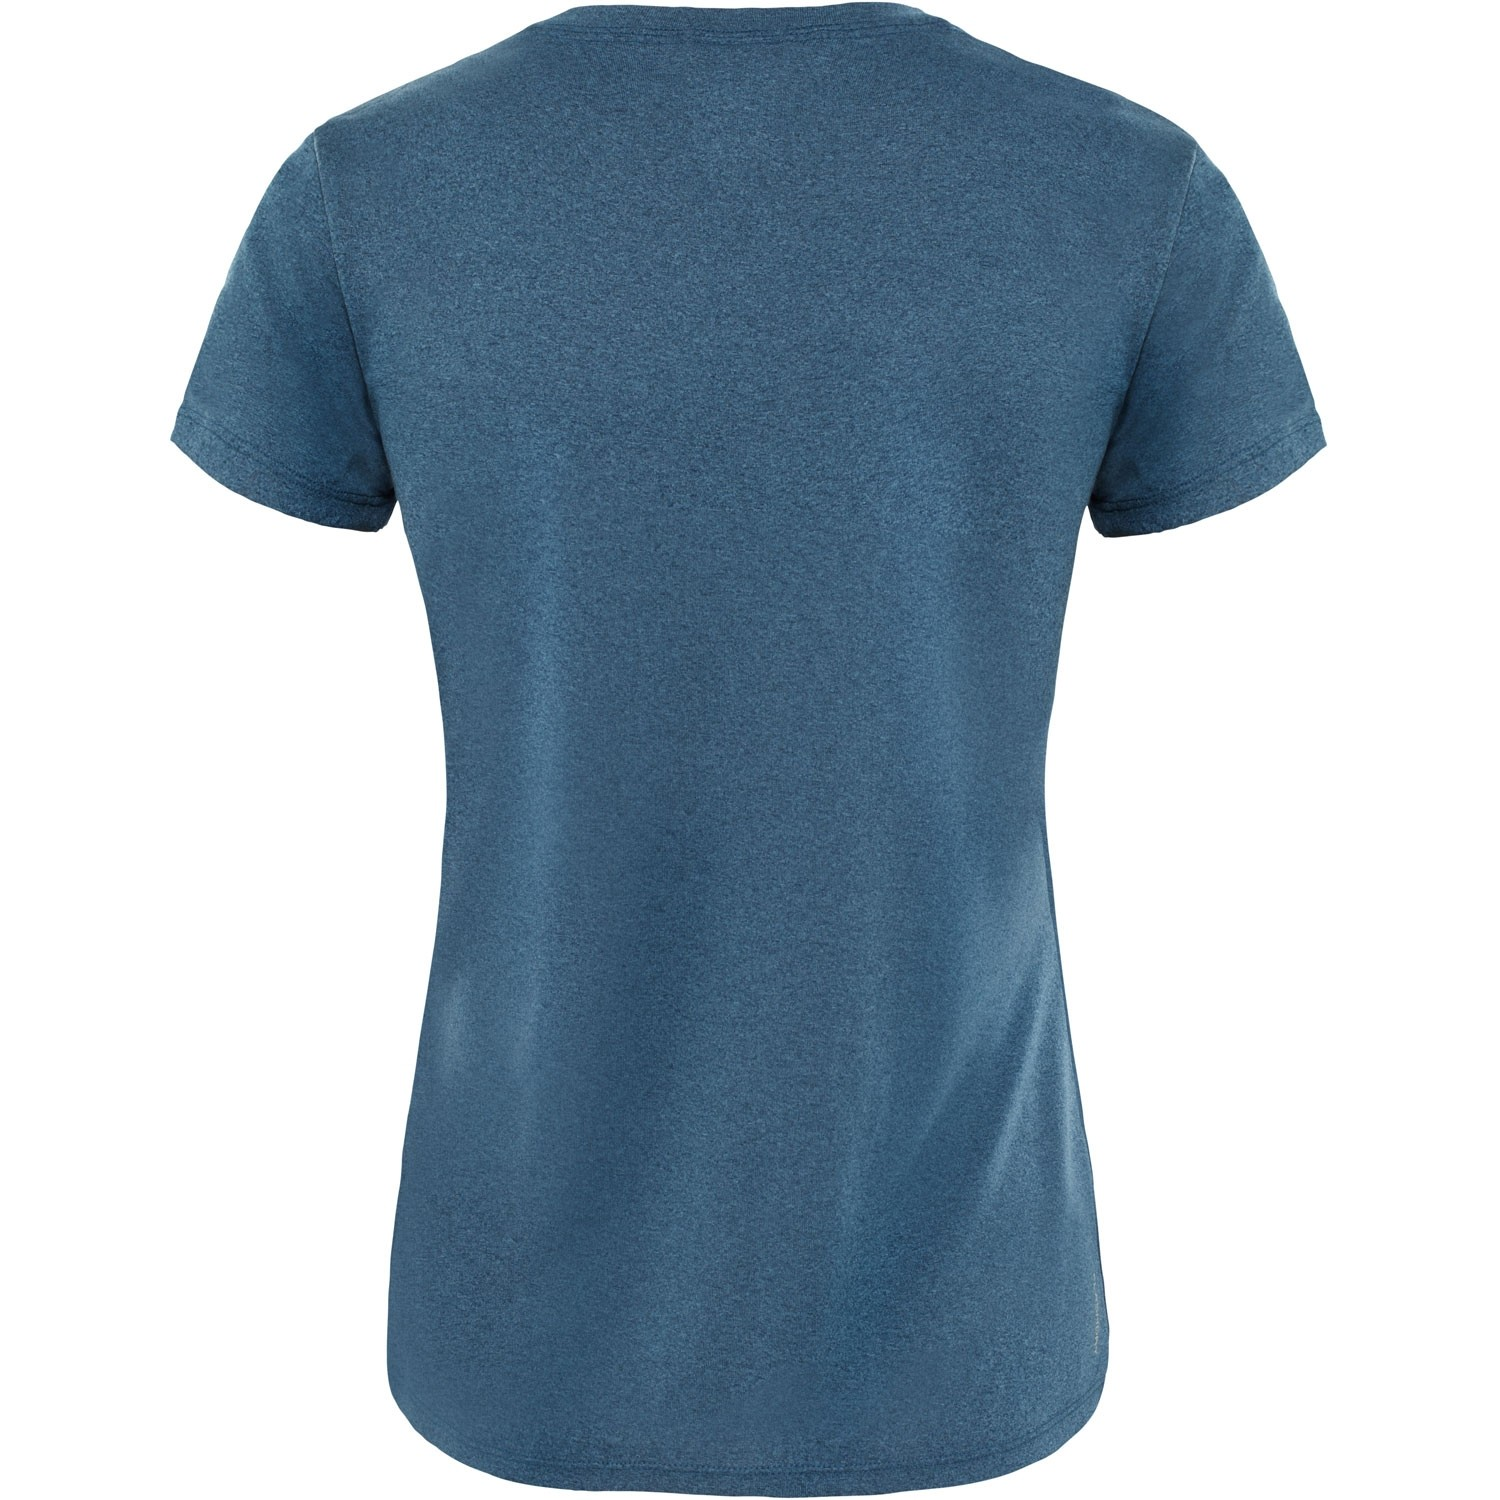 The North Face Reaxion Amp Crew Women's T-Shirt - Blue Wing Teal Heather